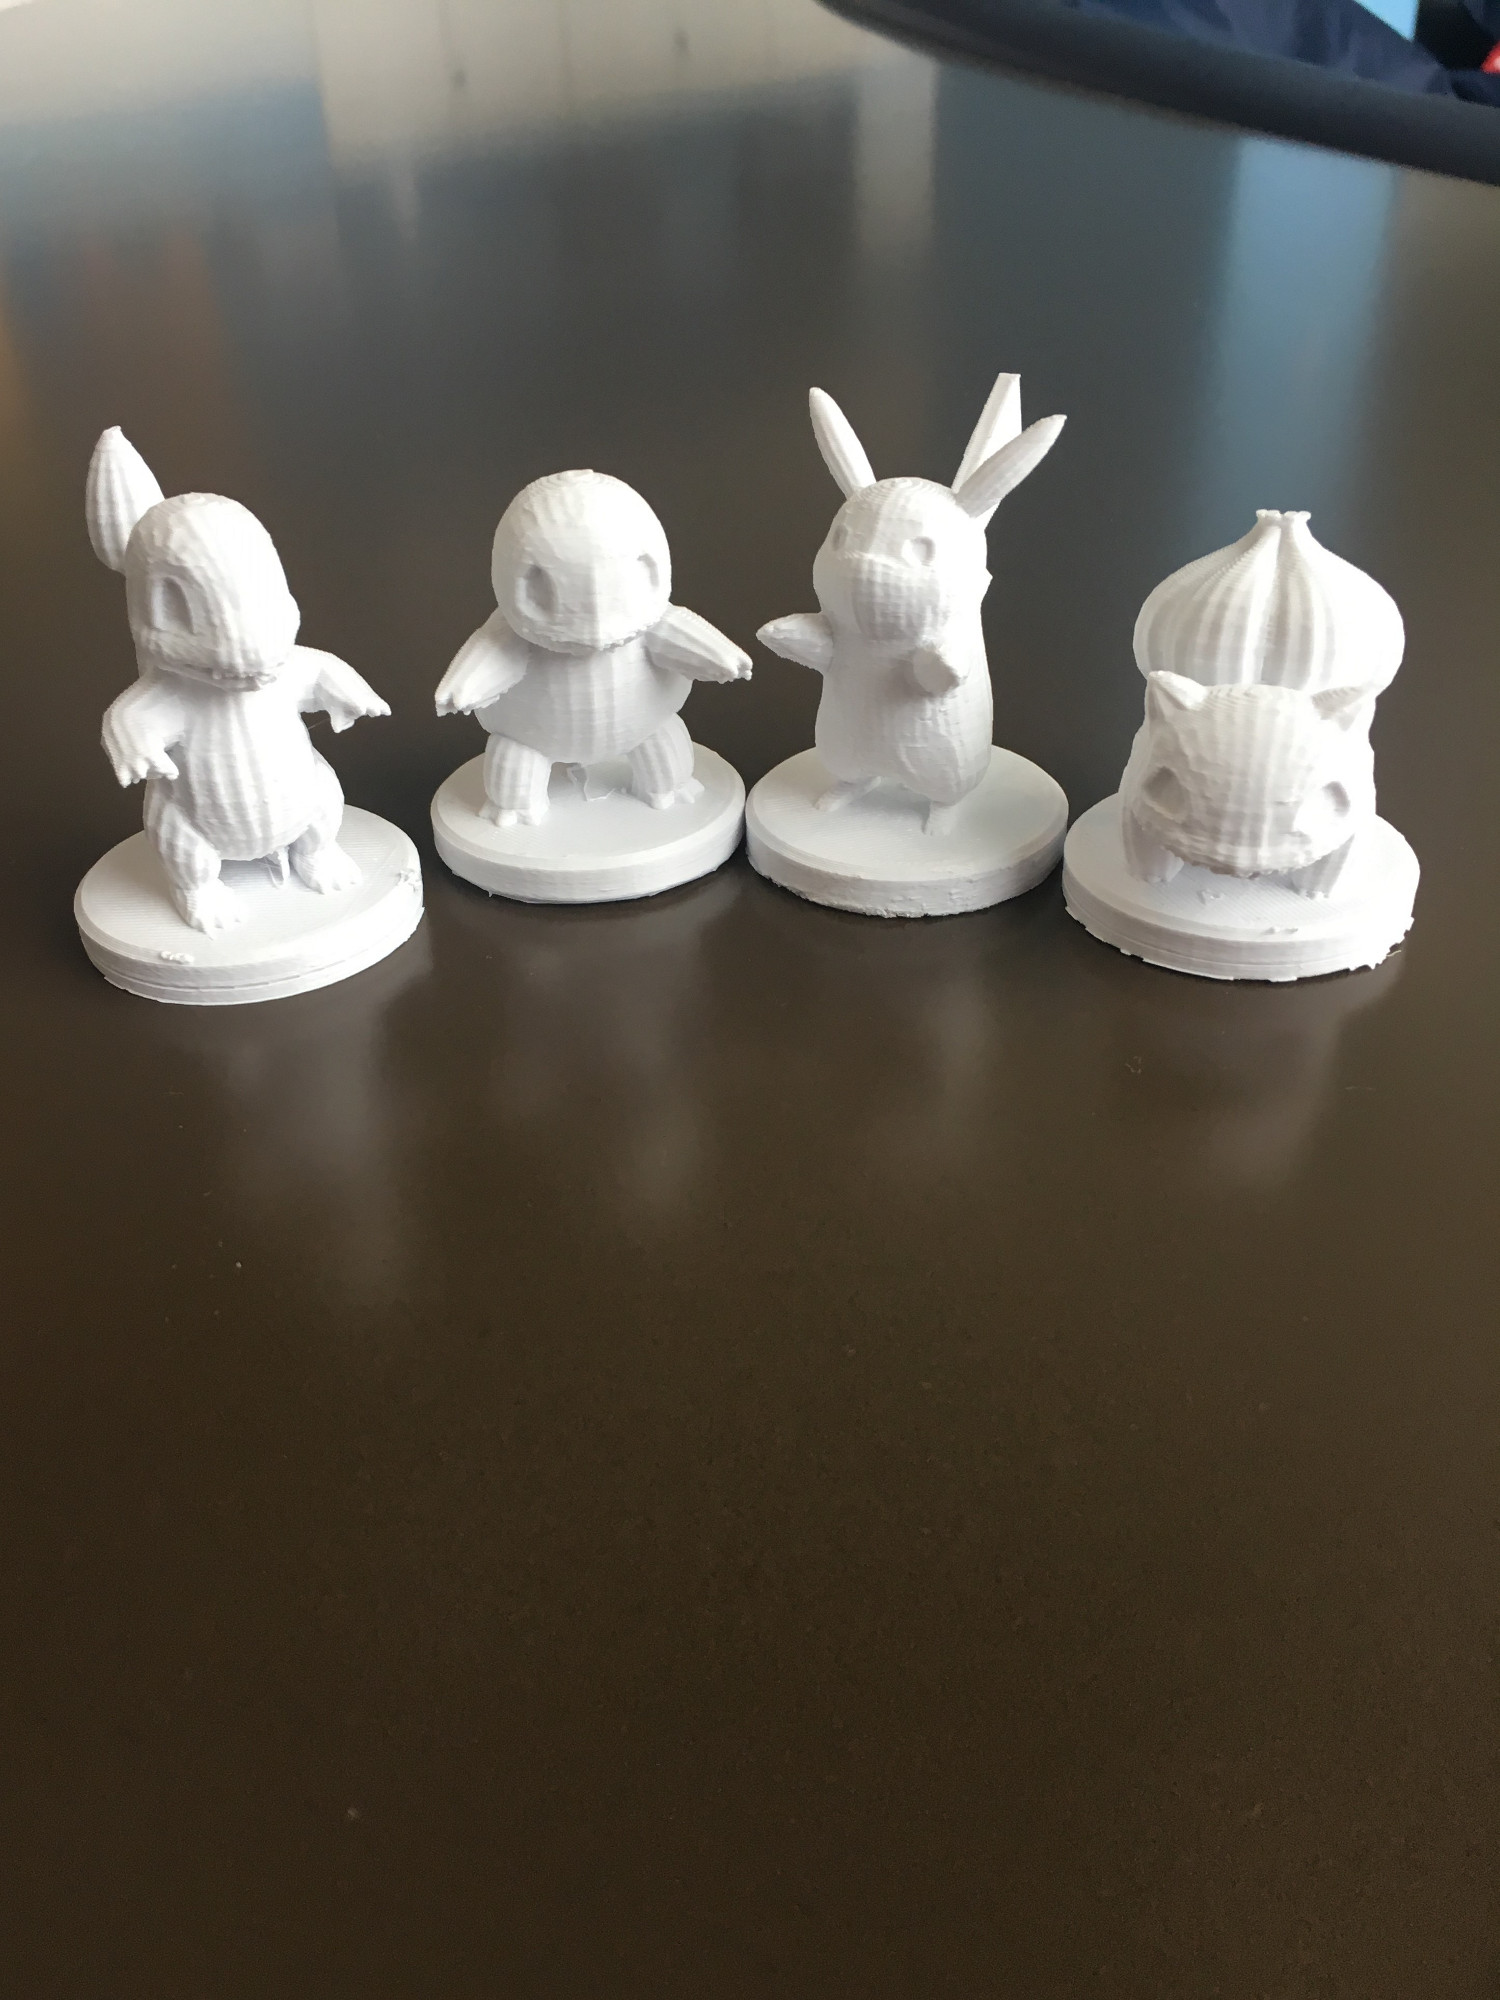 3D printed Pokemon pawns